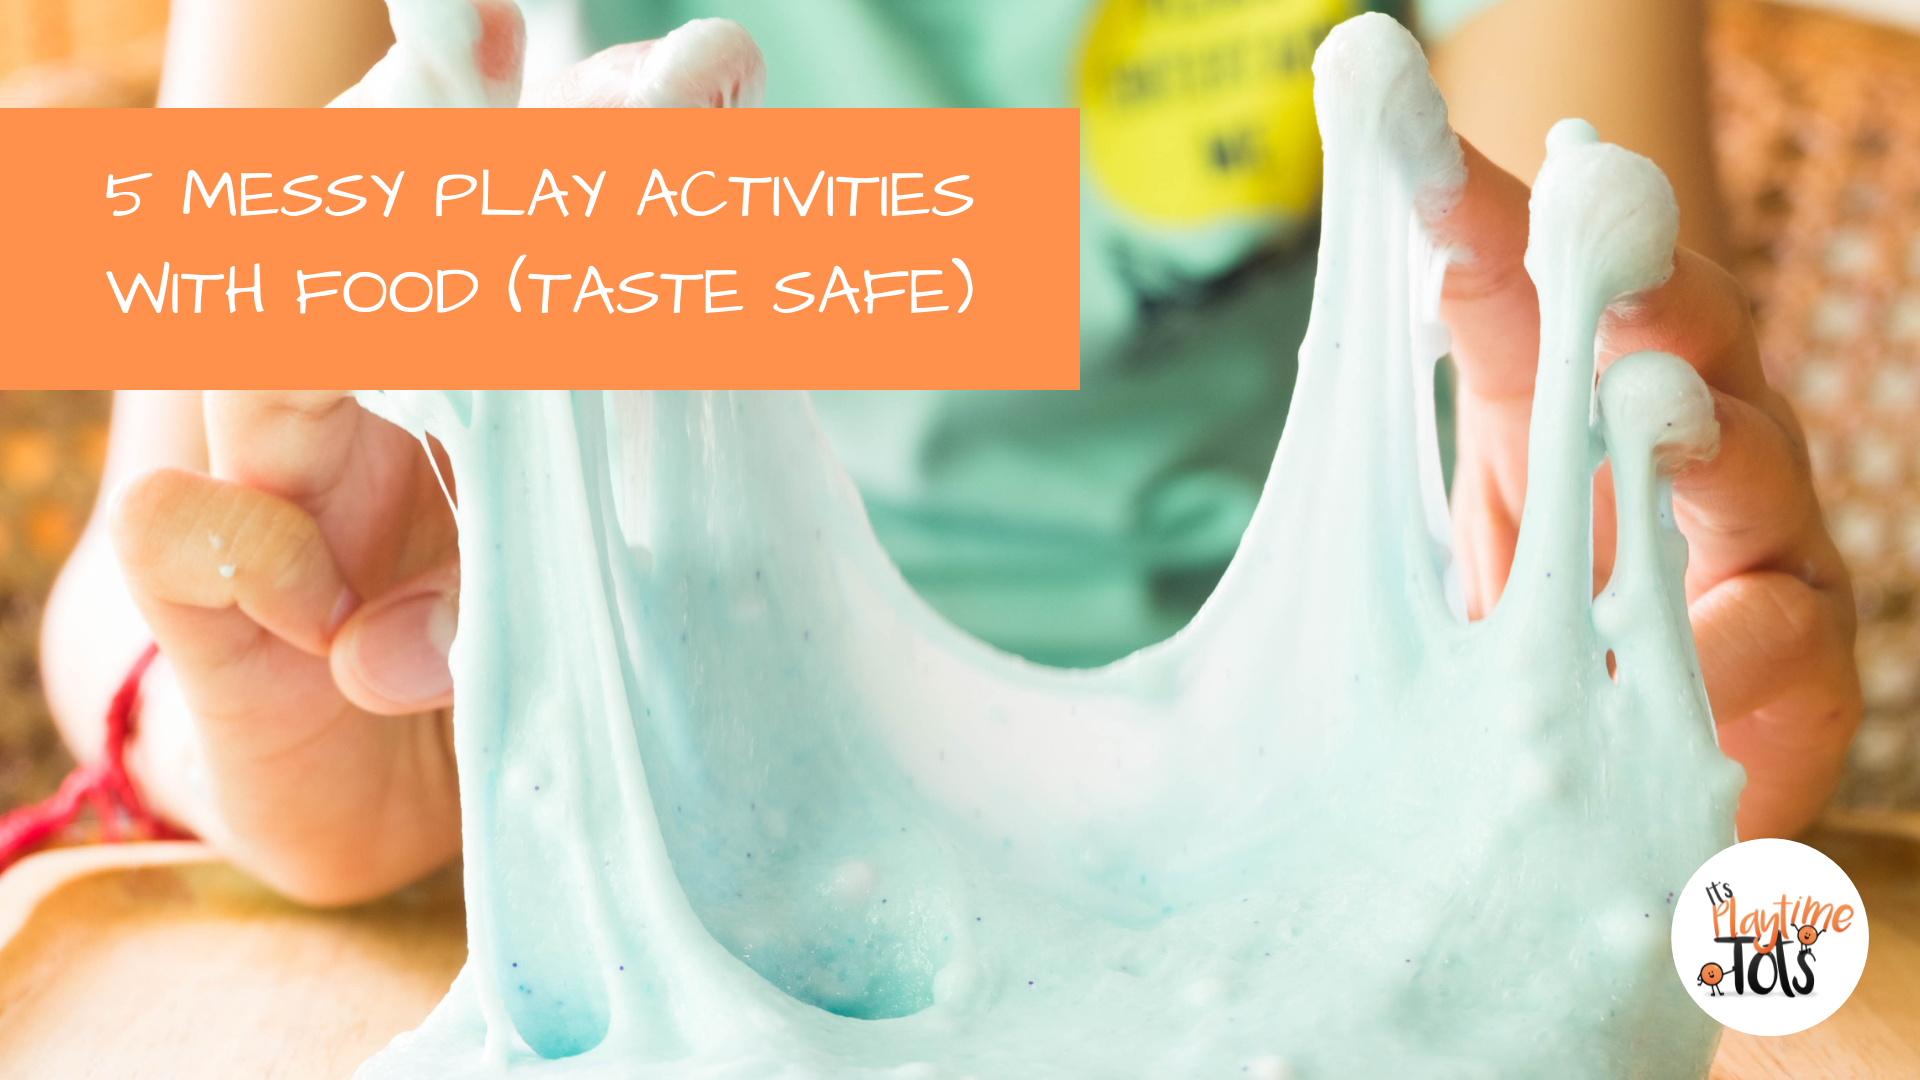 5 Messy Play Activities With Food (Taste Safe)